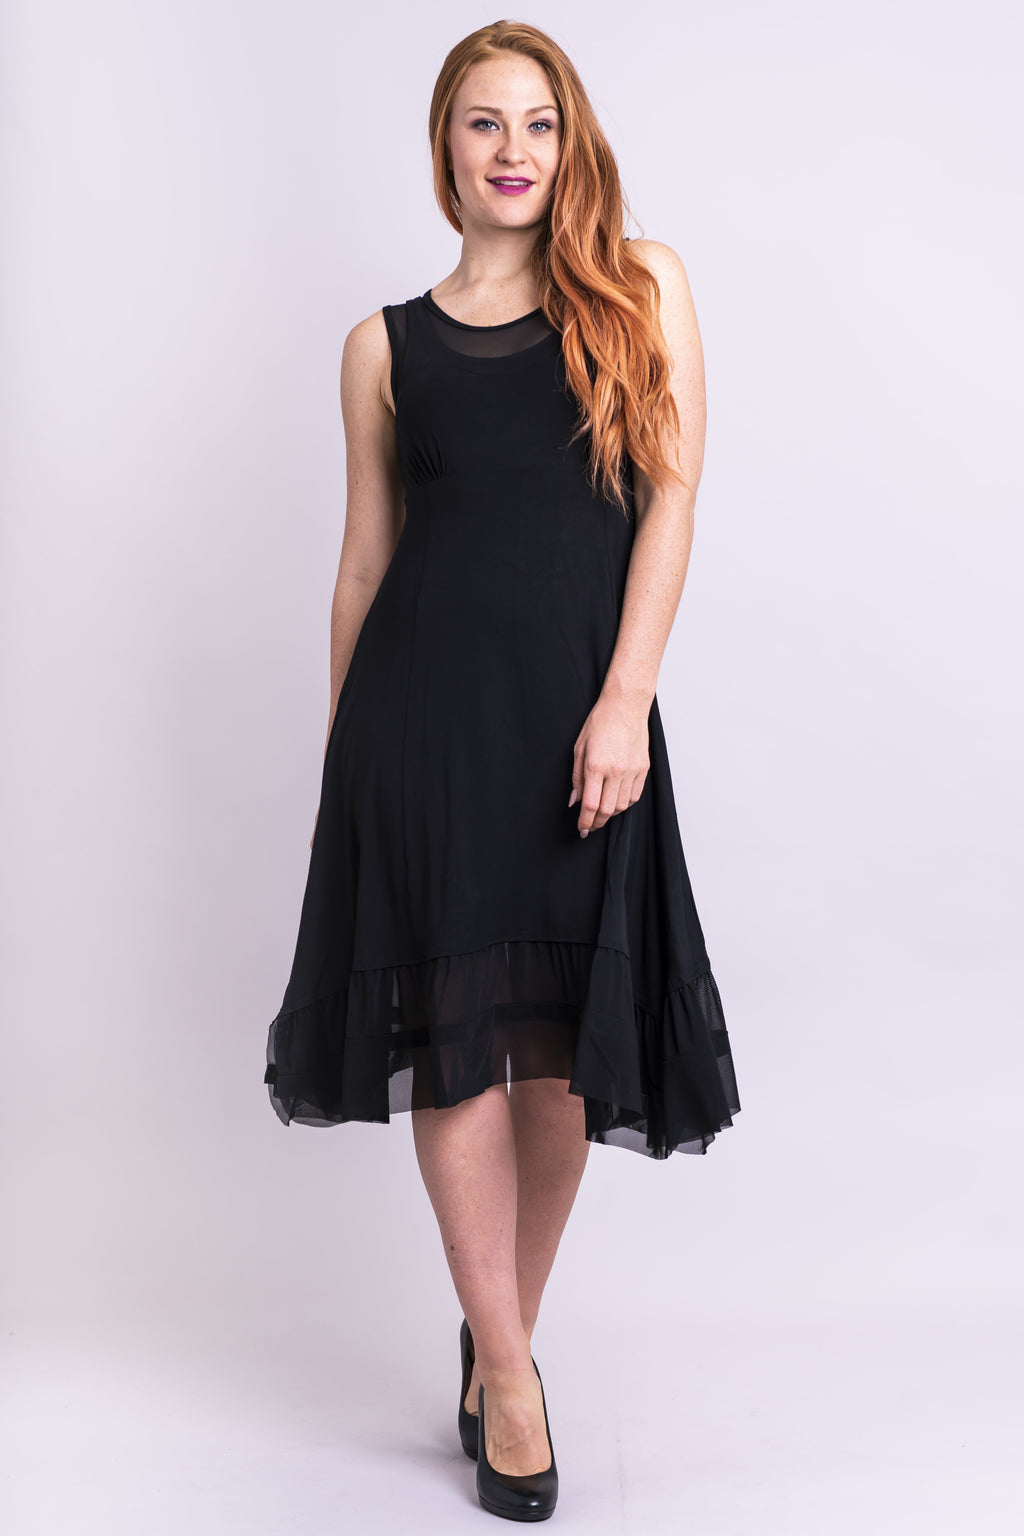 Danube Dress, Black, Bamboo - Blue Sky Clothing Co